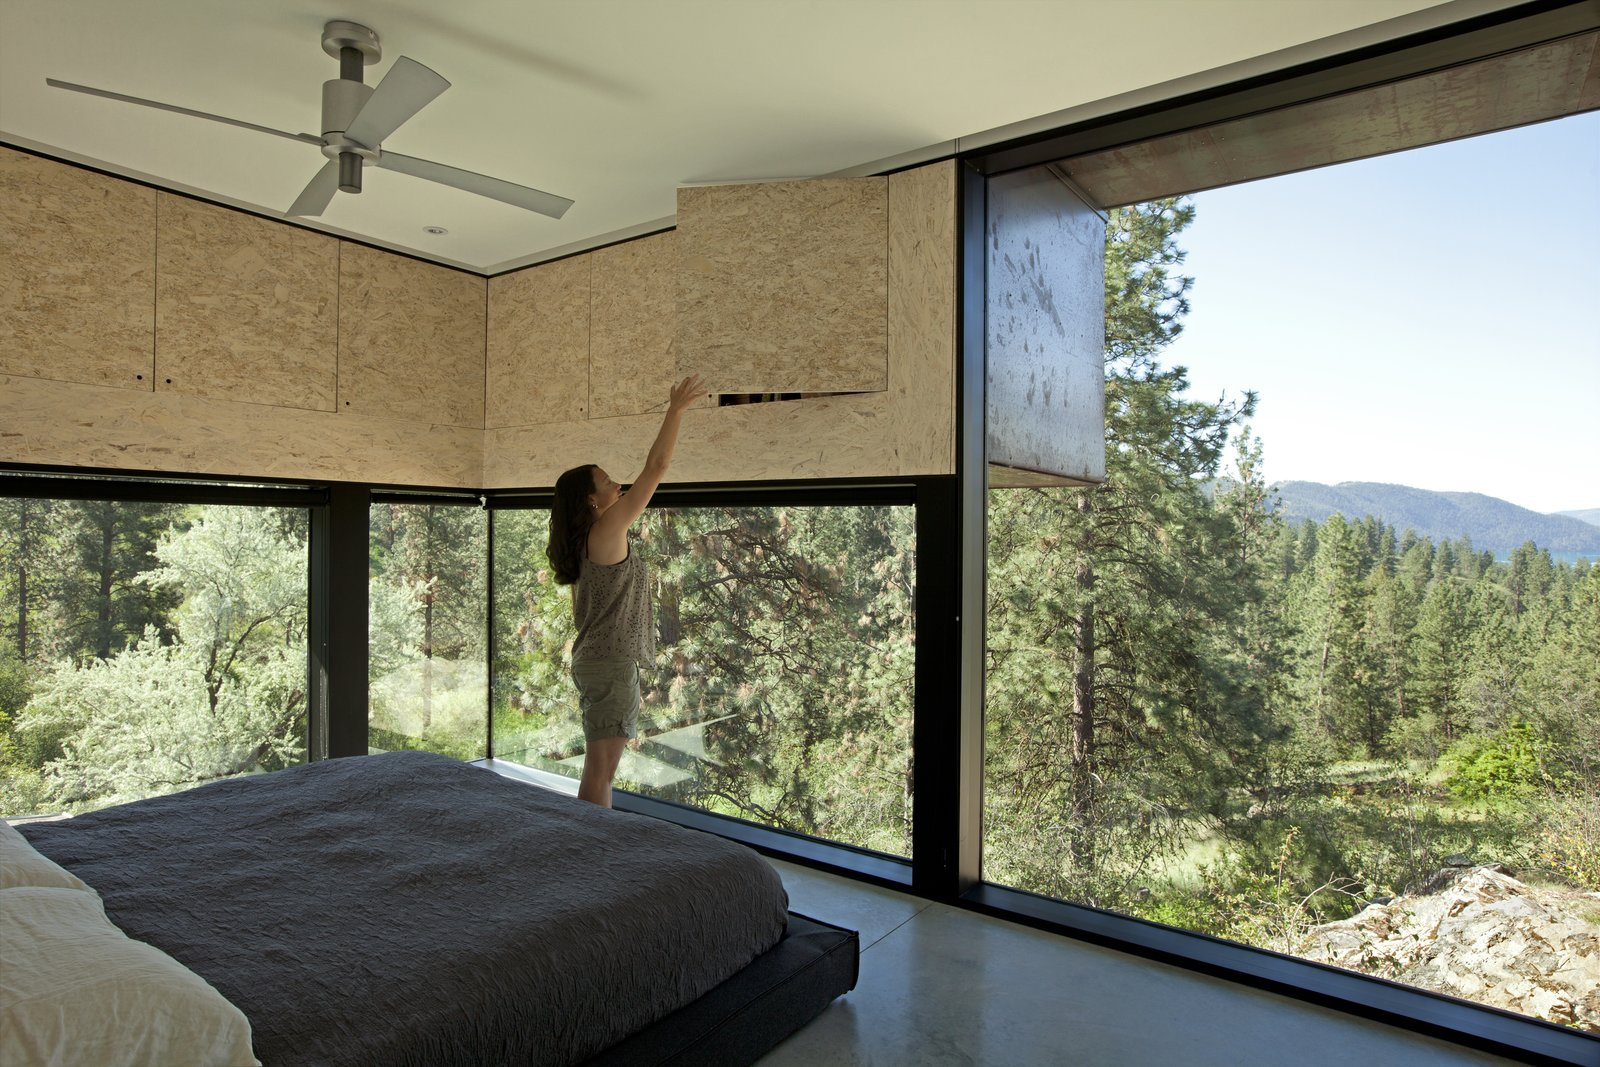 Protruding overhead cupboards increase storage space and reduce solar gain. The bed is Dodu by Blu Dot. Tagged: Bedroom, Bed, and Concrete Floor.  Photo 8 of 11 in A Hilltop Home in British Columbia That Seems to Grow Out of a Park